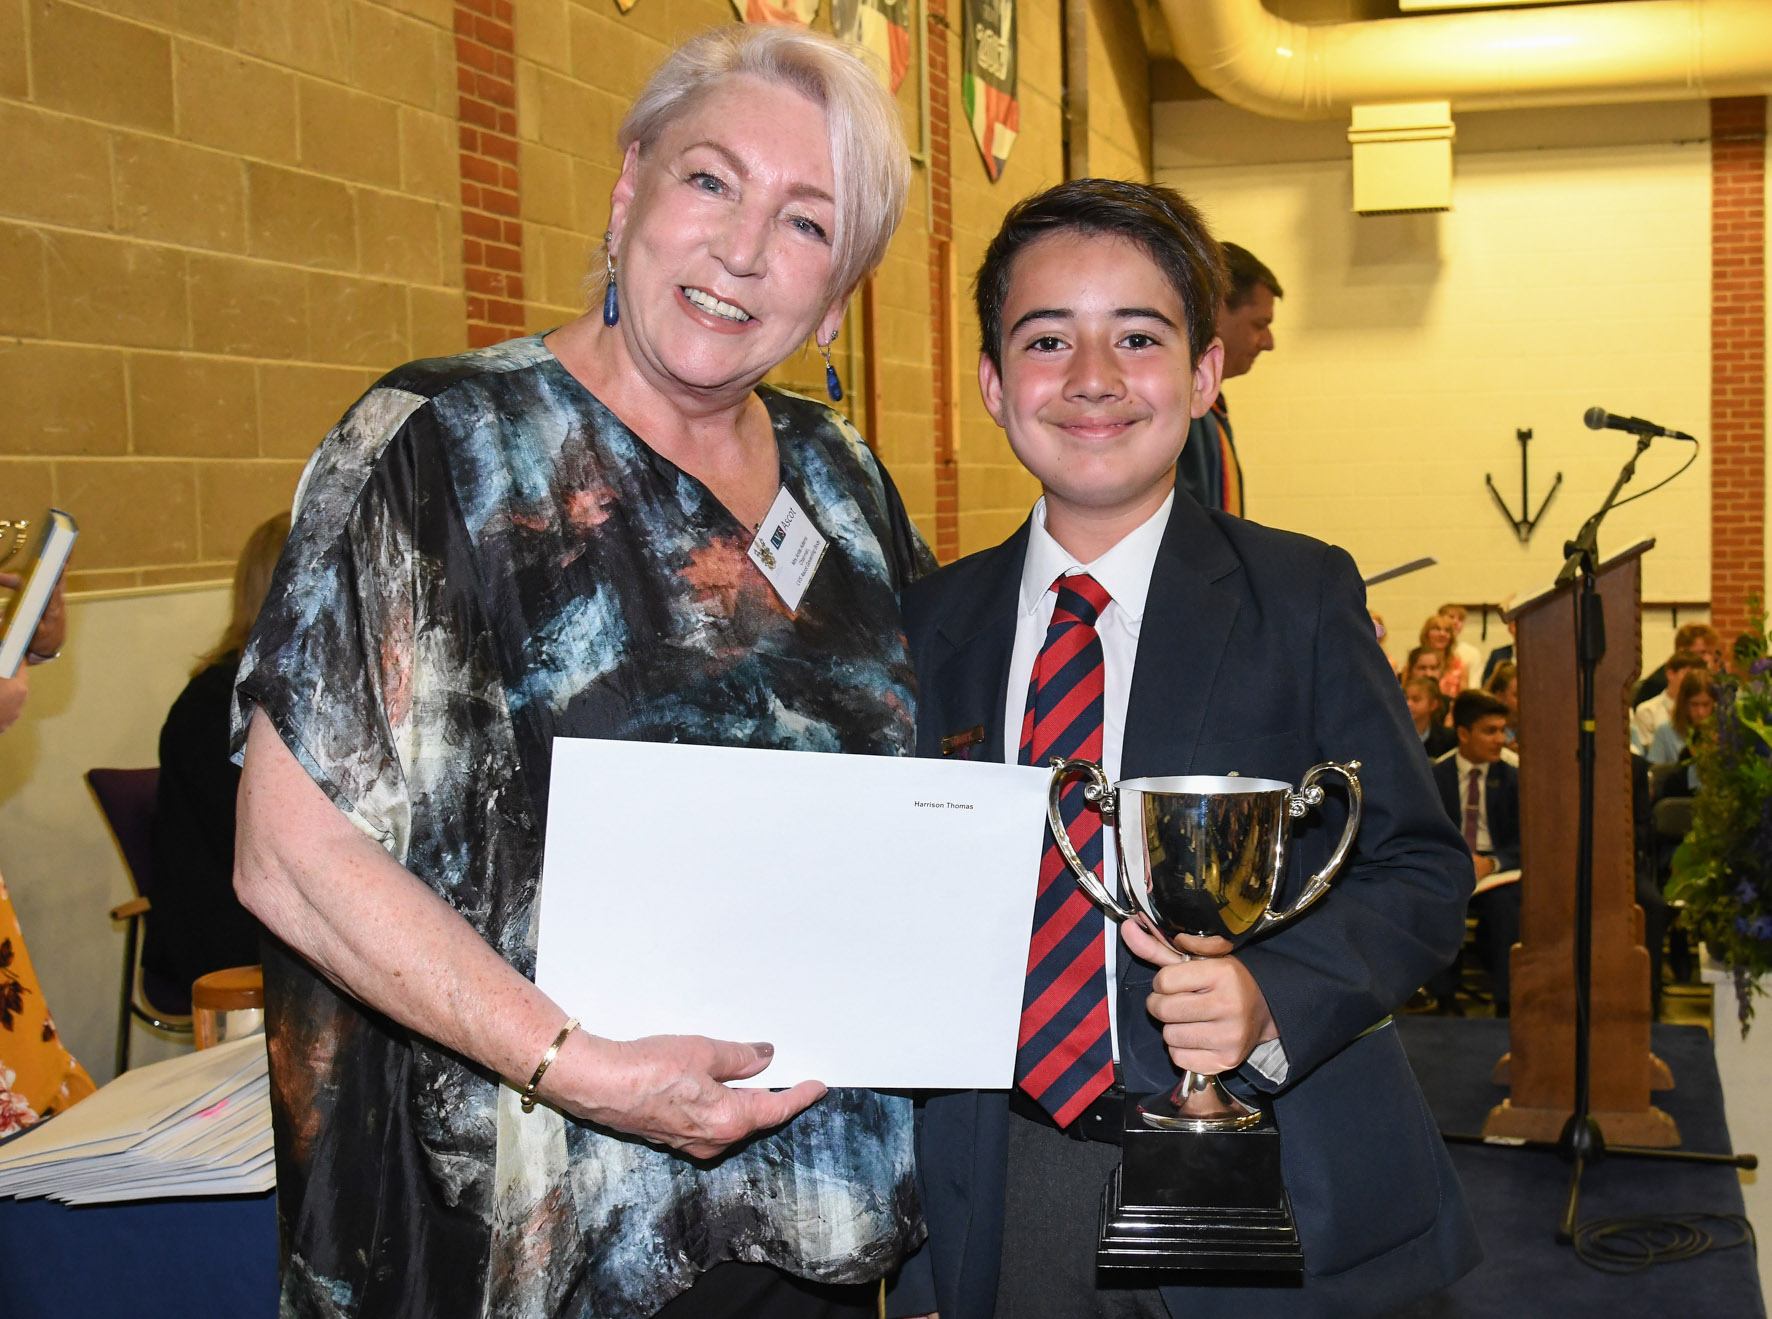 08.07.19. Harrison Thomas wins the Year 7 Outstanding Academic Achievement Award a year after leaving the LVS Ascot Infant & Junior School